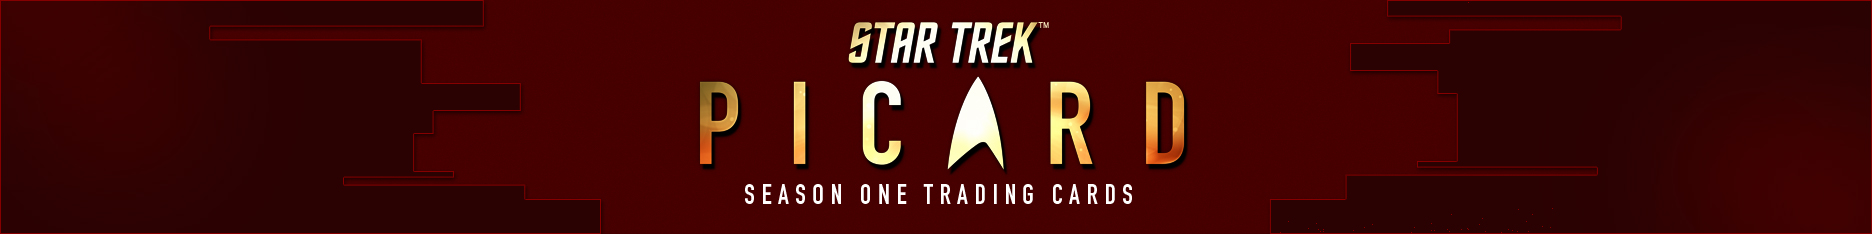 Star Trek Picard Season One trading cards